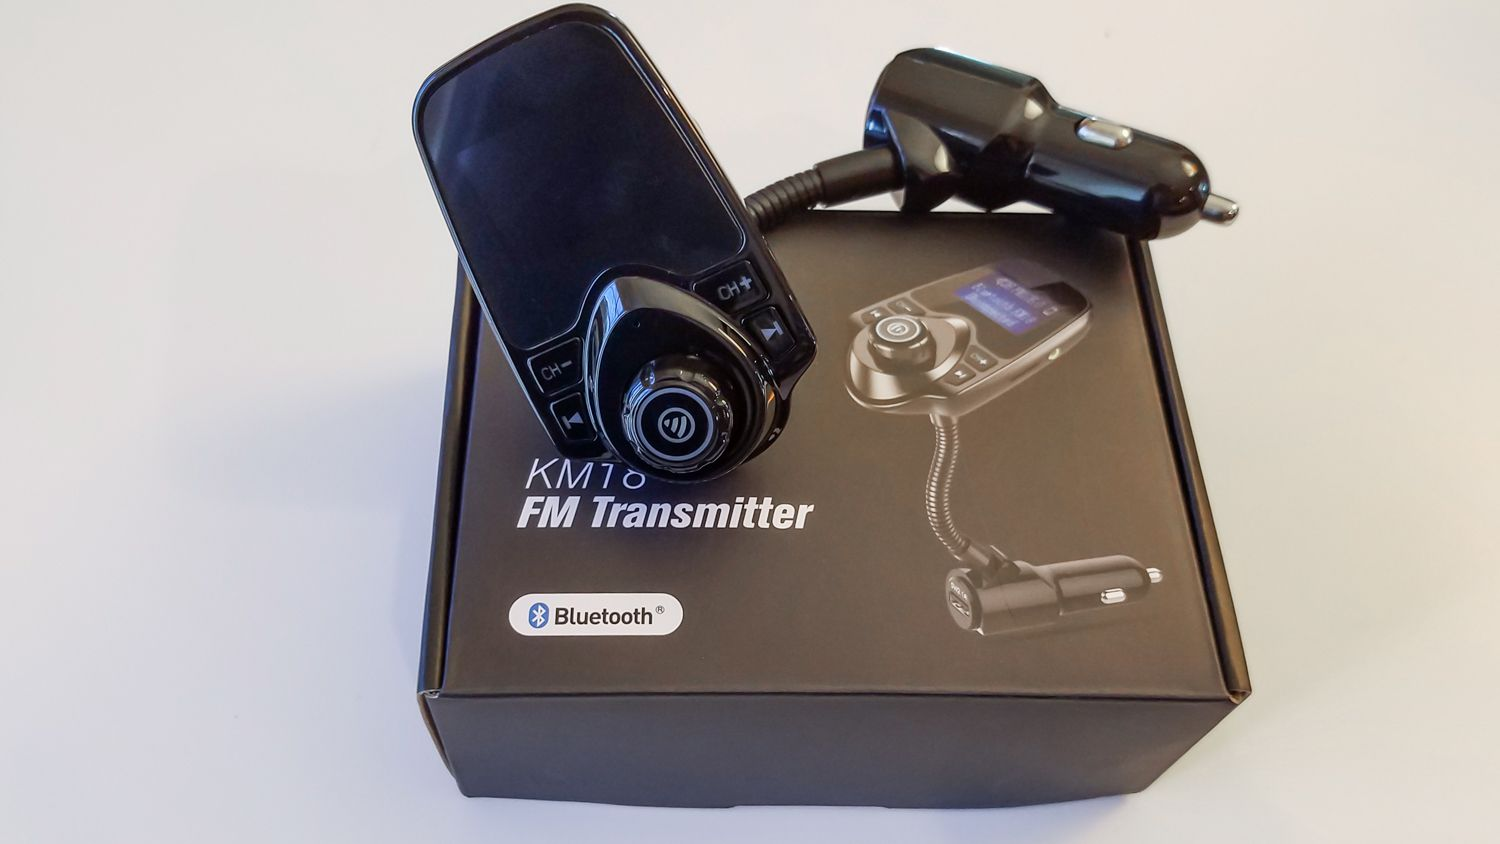 The 10 Best Iphone Fm Transmitters For Your Car In 2019 Recent Added Crystal Controlled Transmitter Tx Telephone